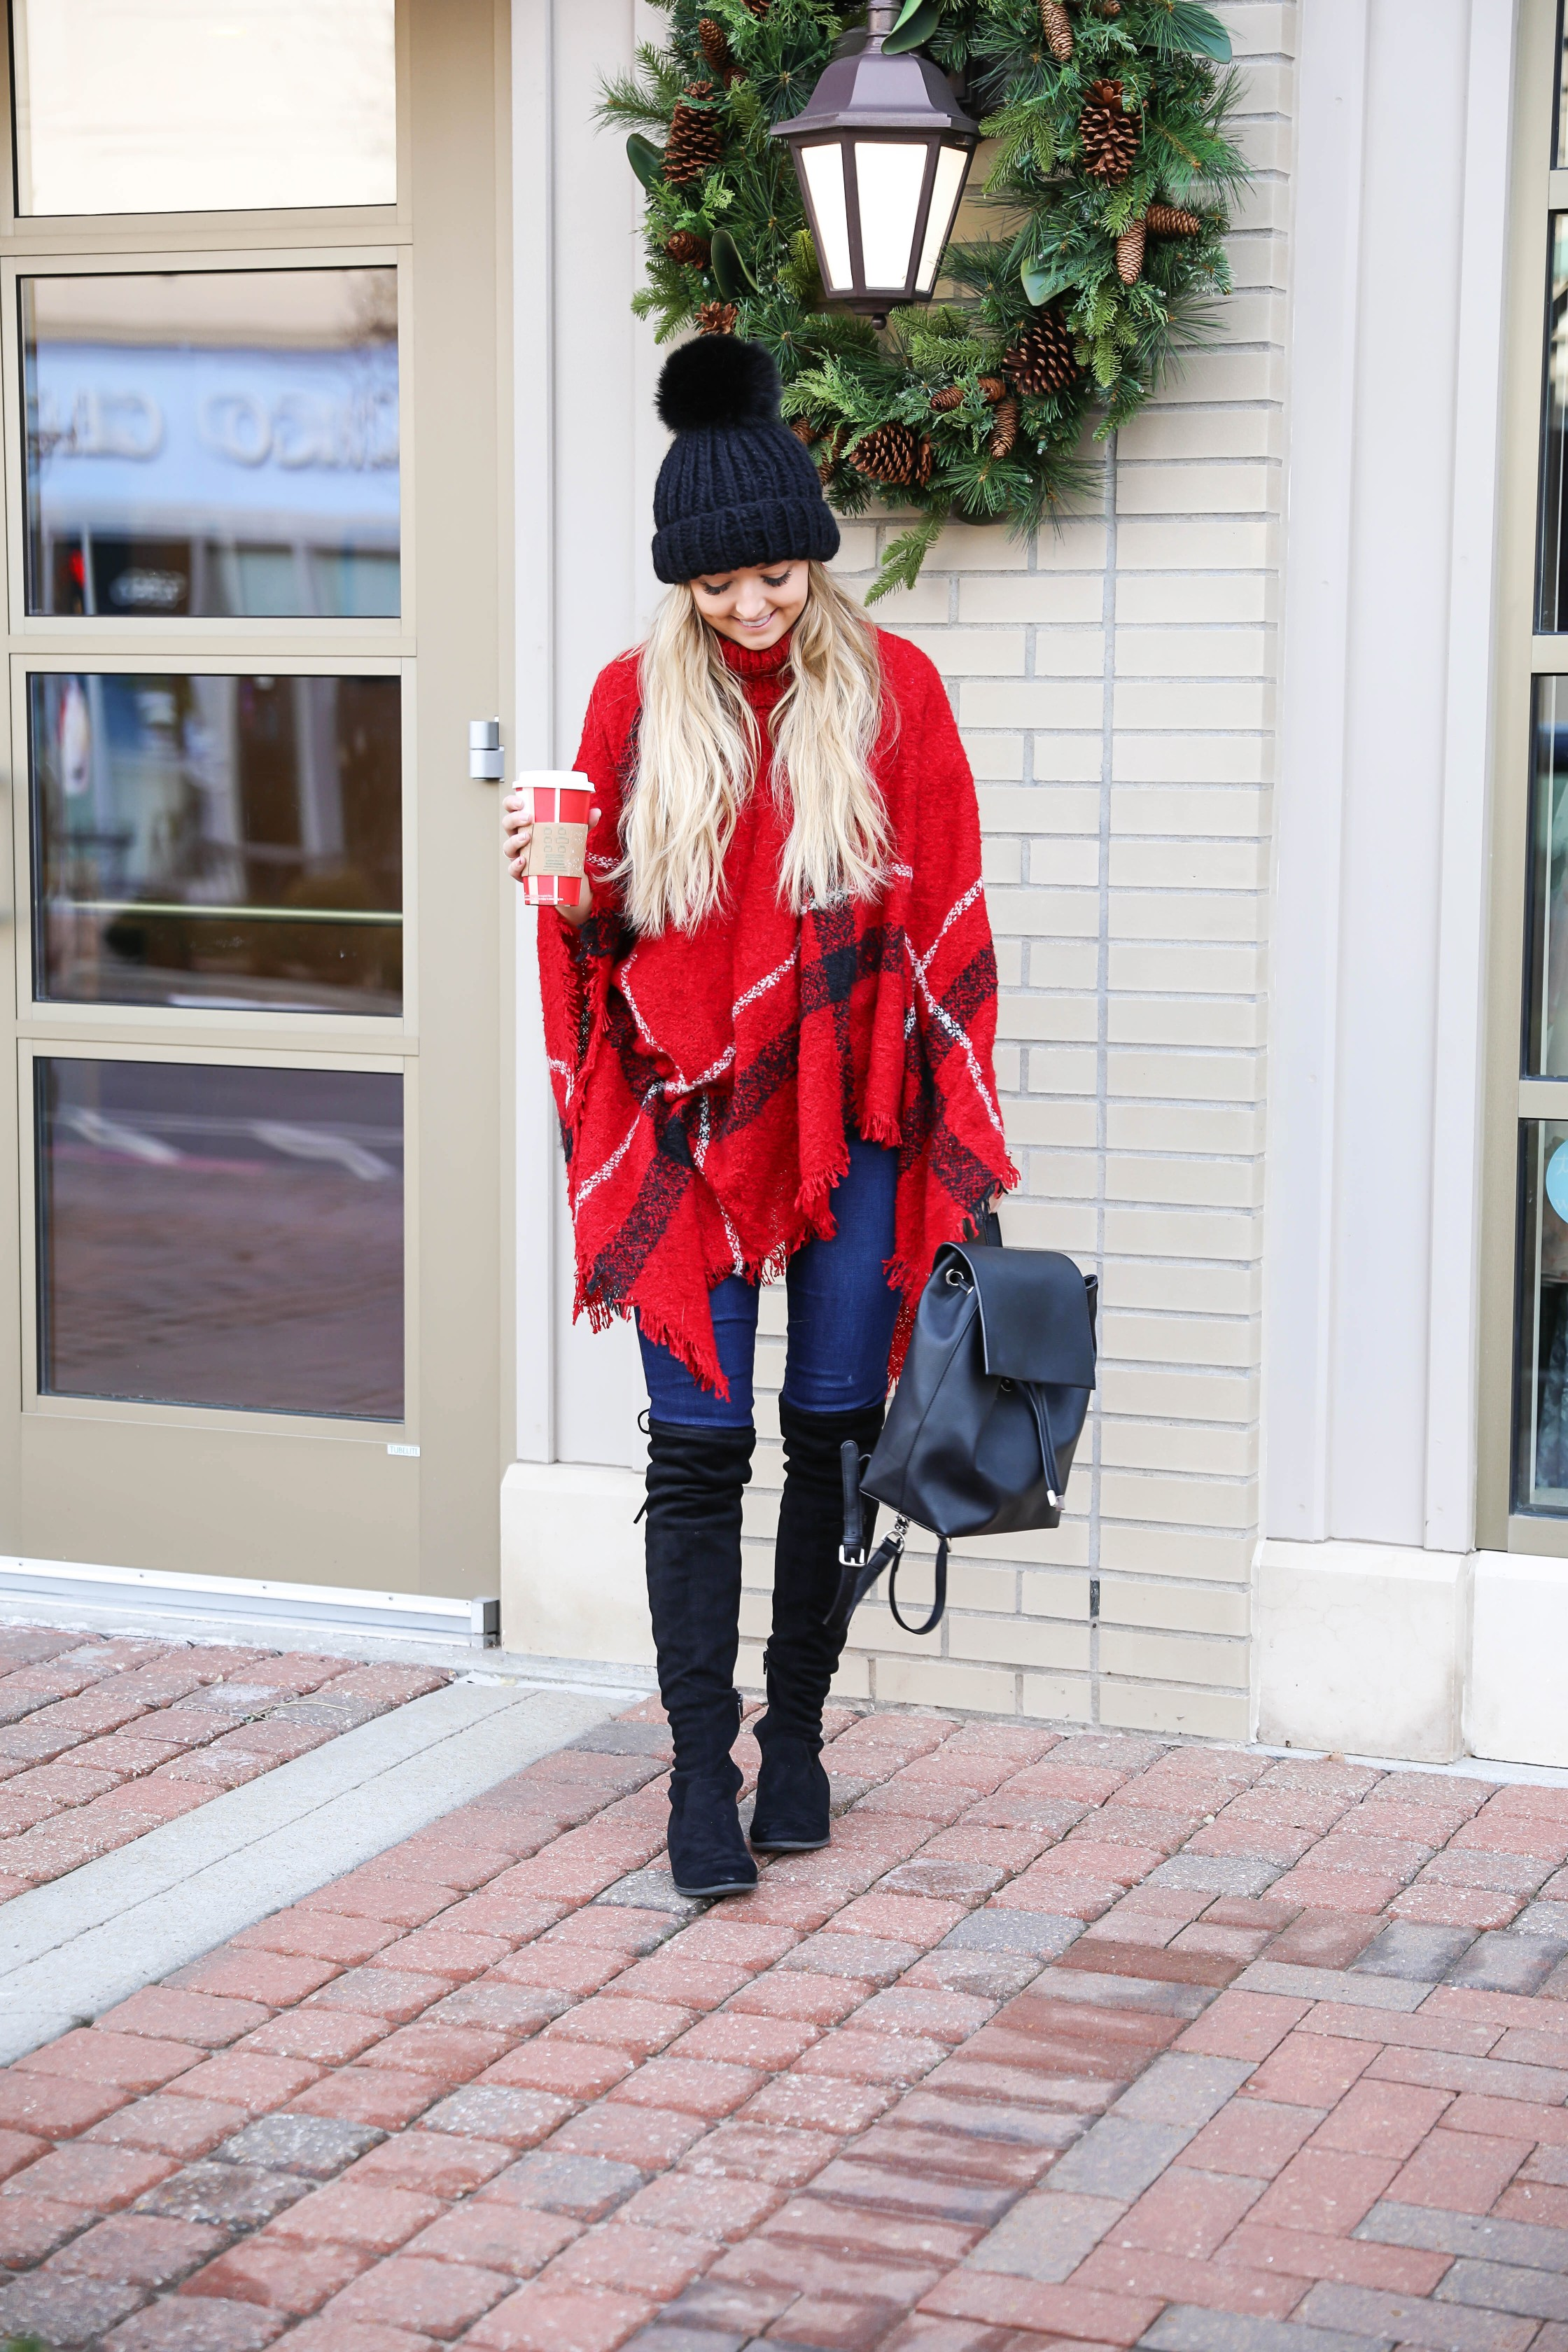 Red plaid Christmas poncho with the cutest turtleneck! I got this cute outfit from the Pink Lily Boutique! I love winter fashion, this holiday outfit would make for a cute Christmas look! Details on the blog daily dose of charm by lauren lindmark